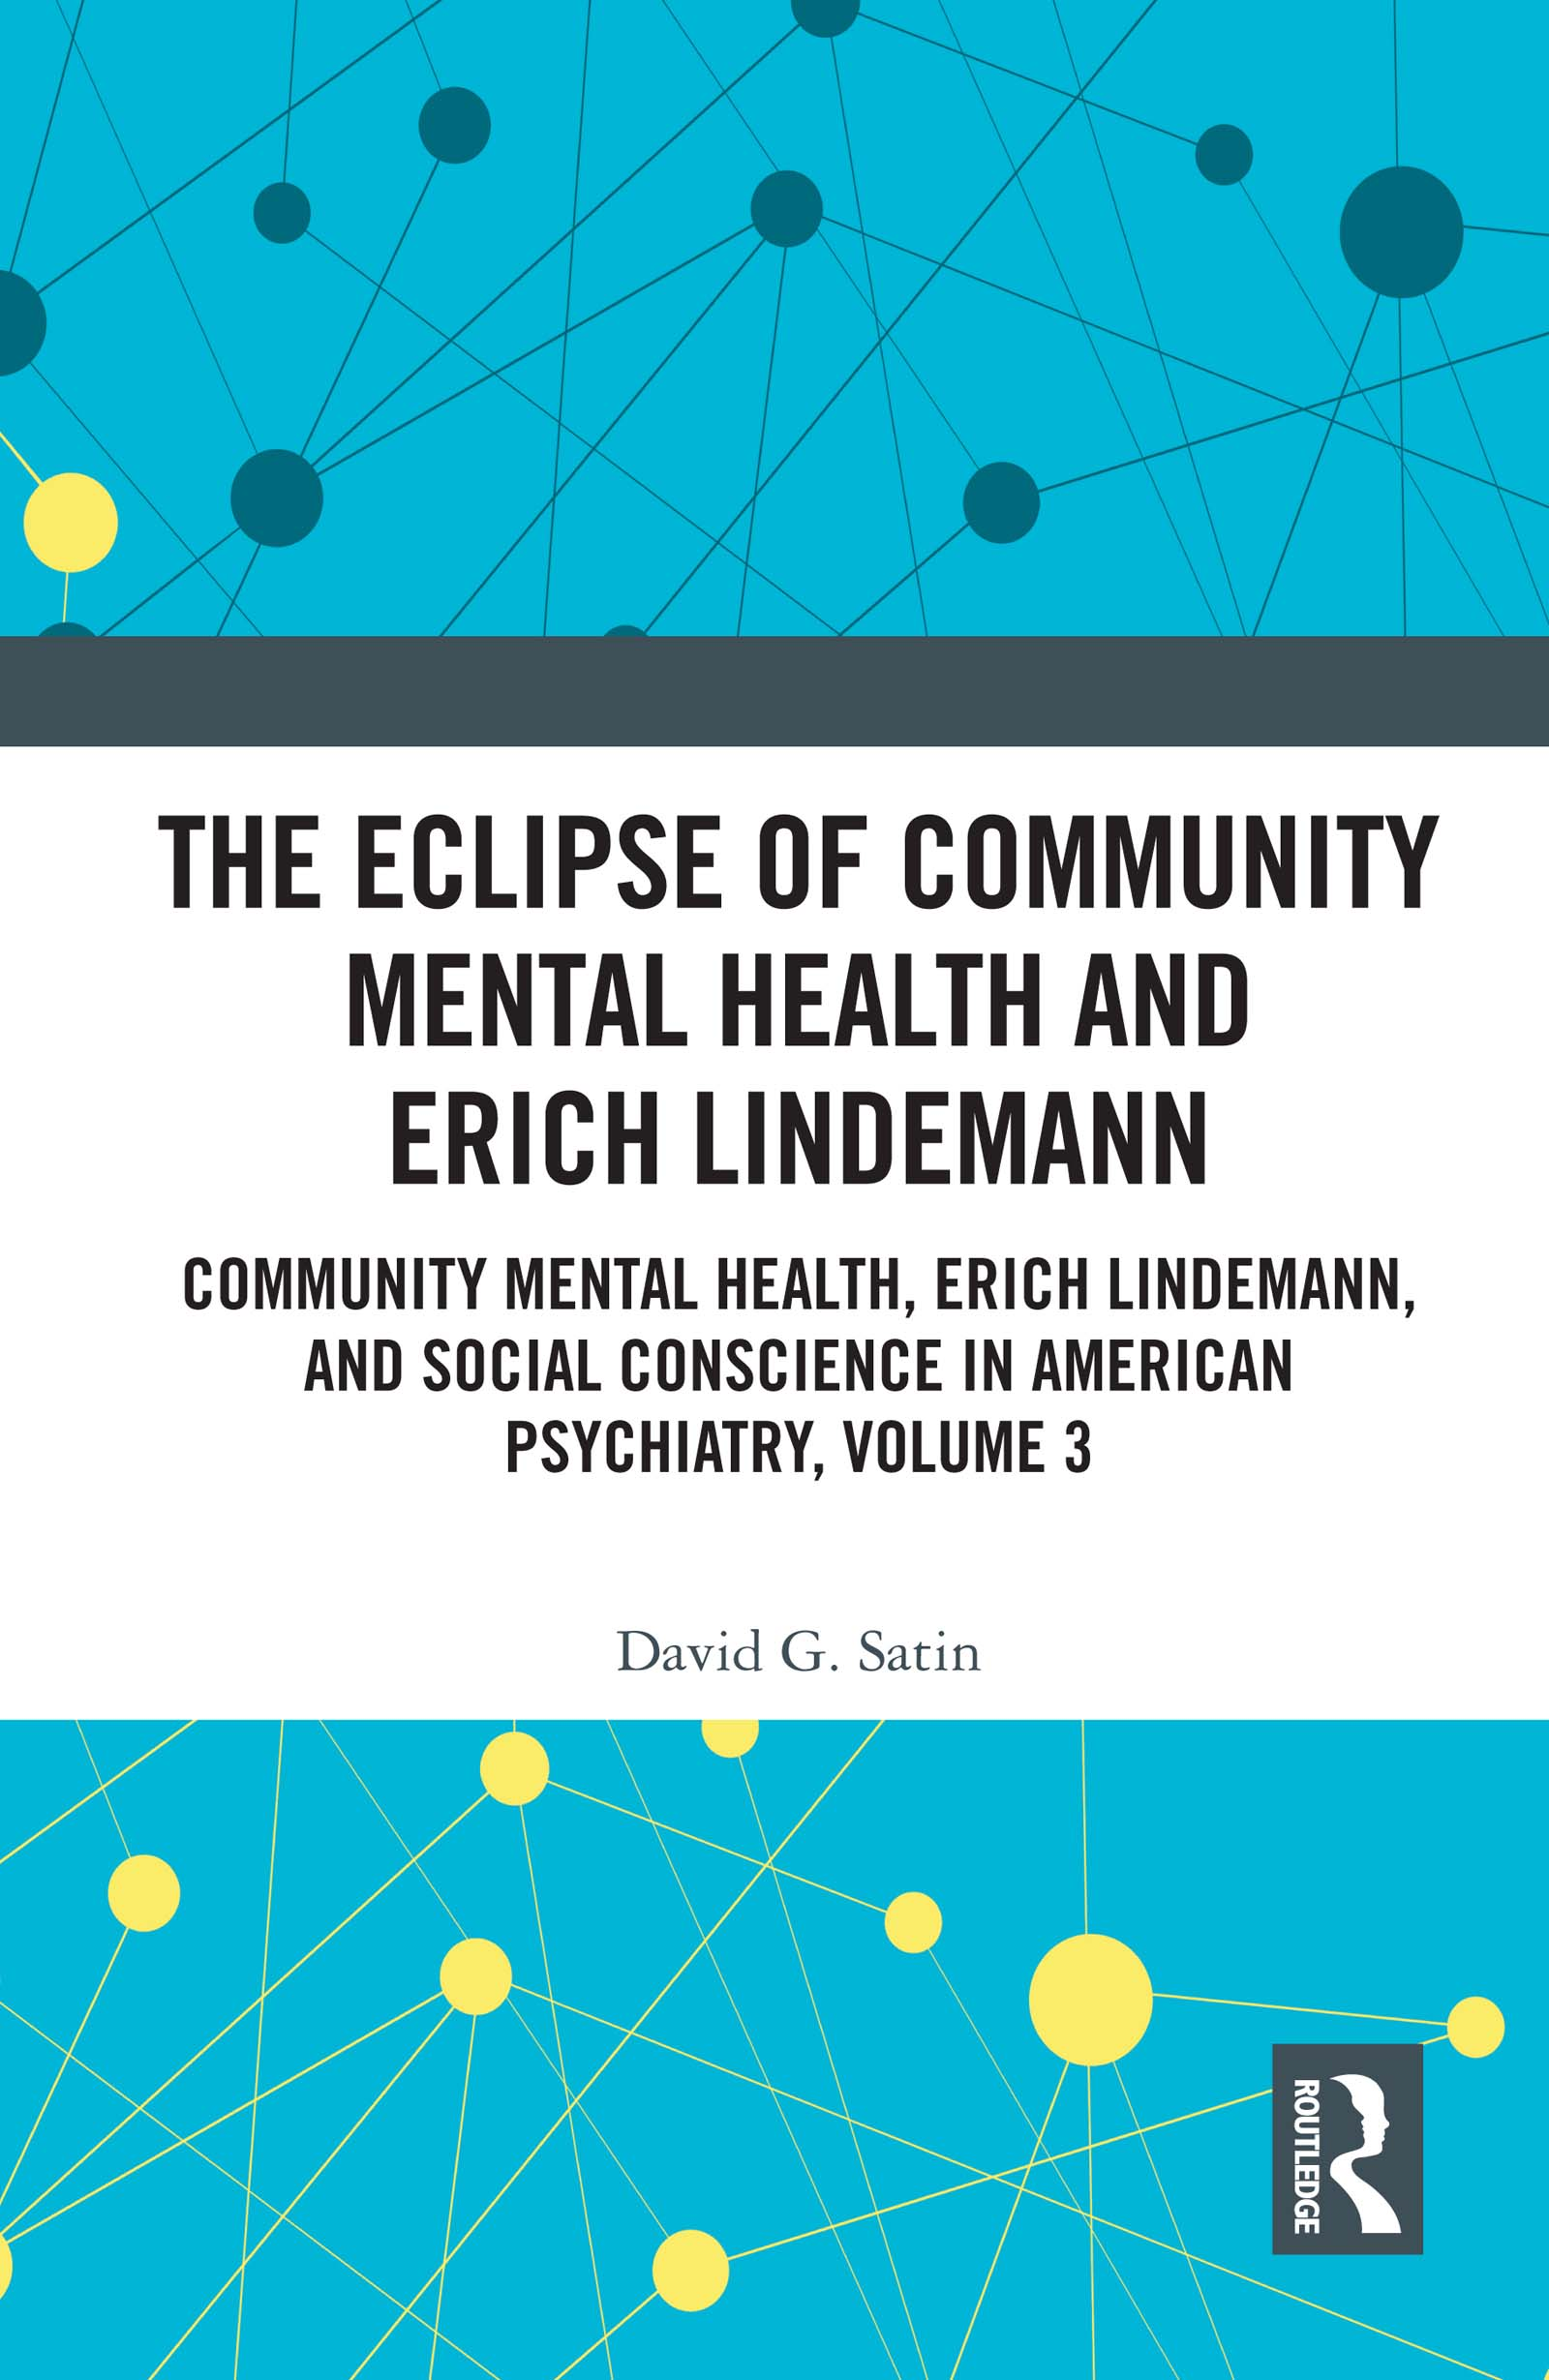 The Eclipse of Community Mental Health and Erich Lindemann